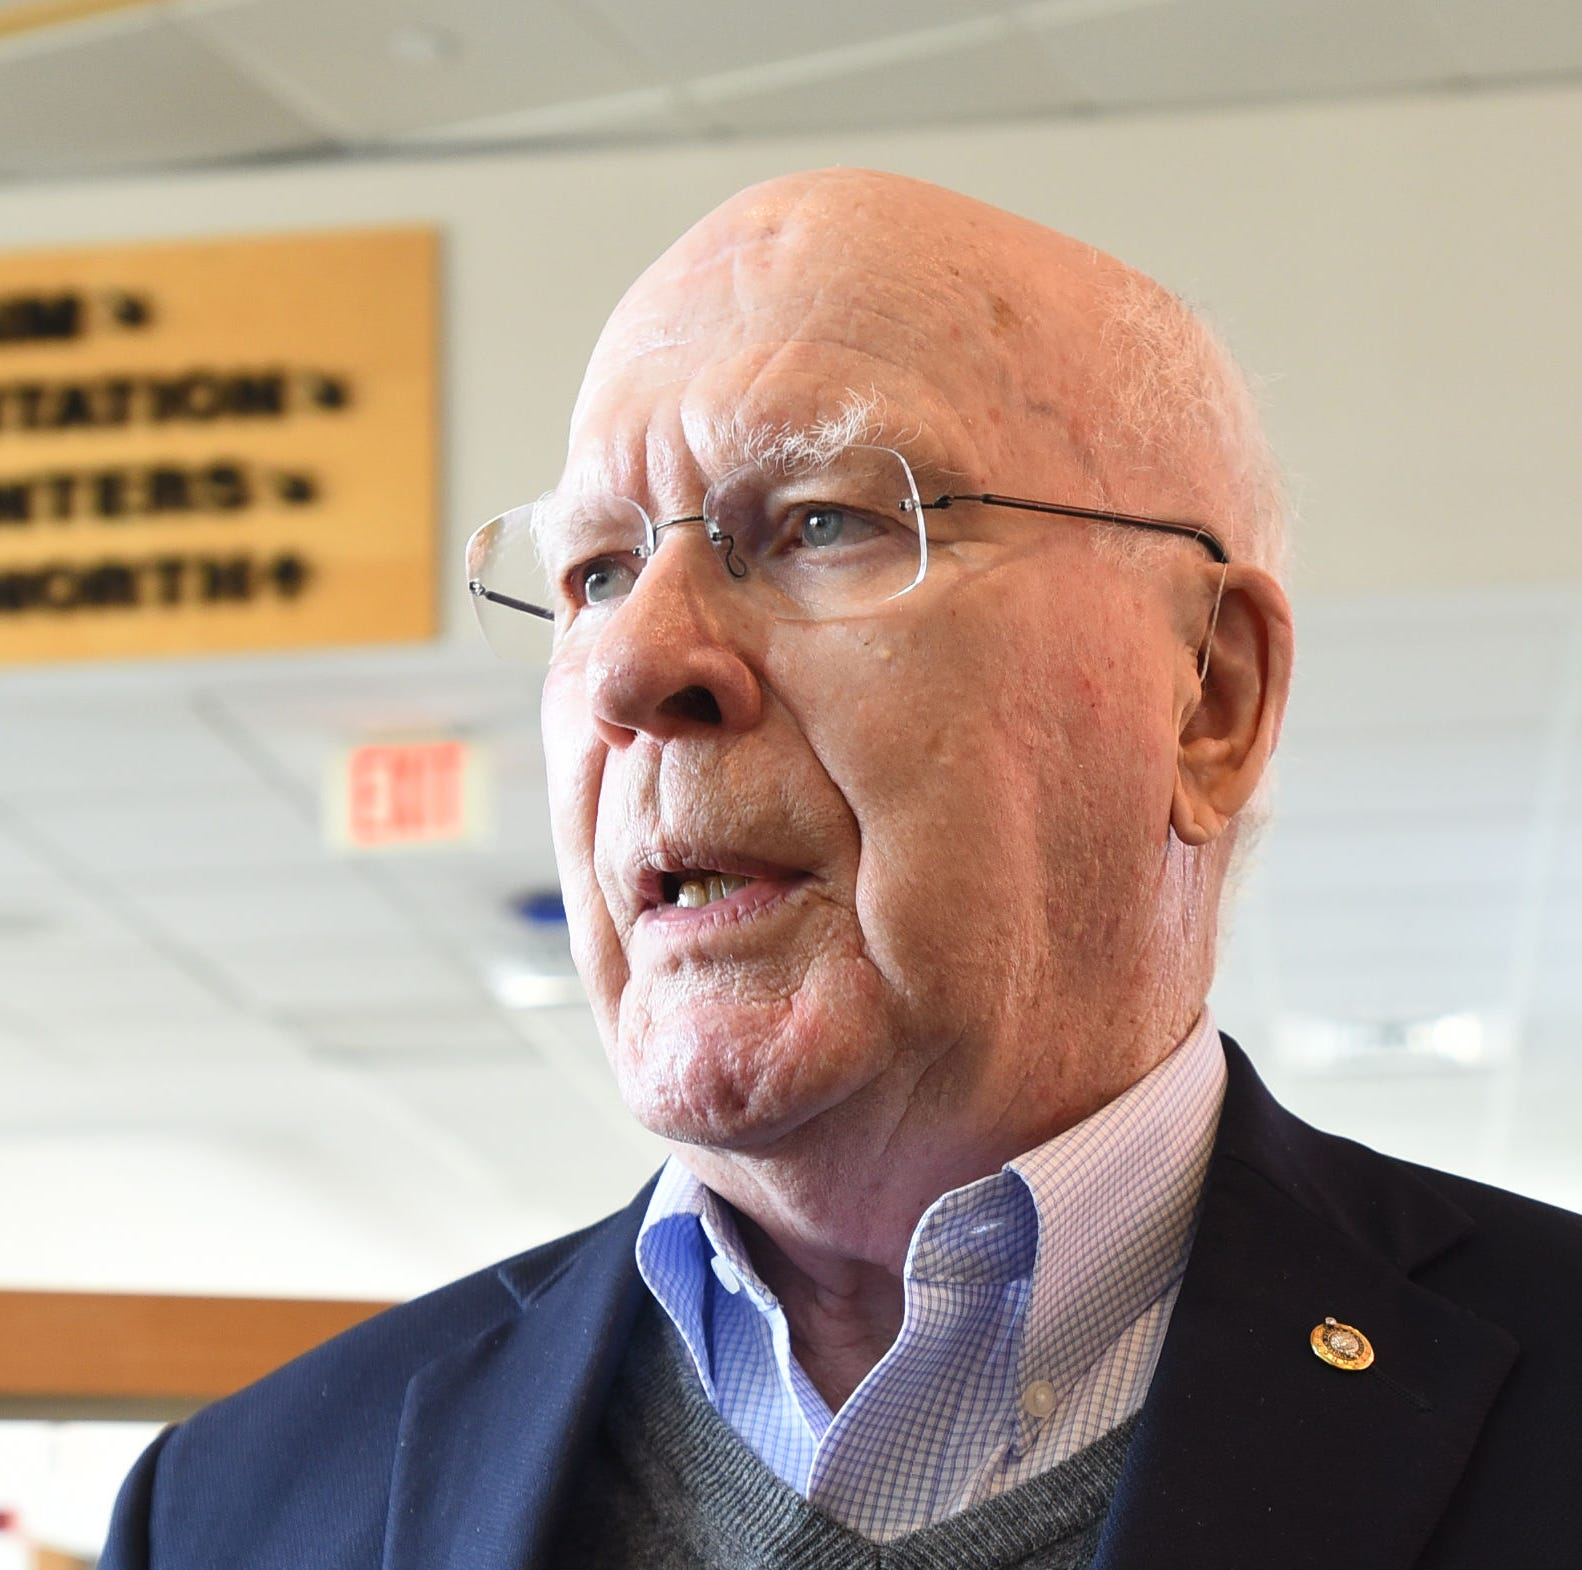 Patrick Leahy: War legacies and the expanding U.S.-Vietnam partnership